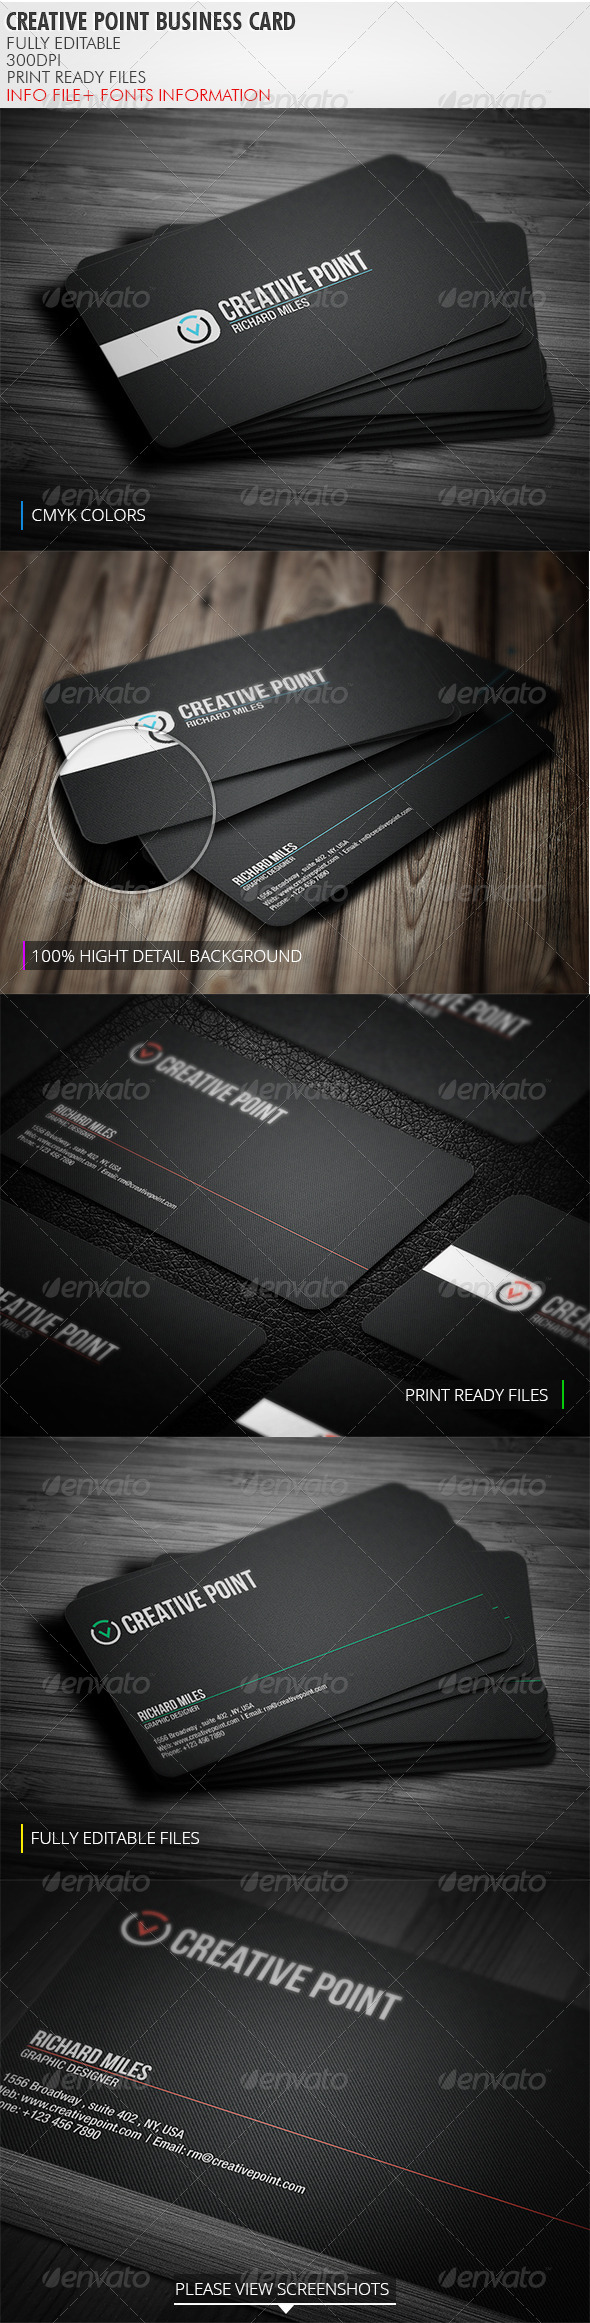 Creative Point Business Card - Creative Business Cards